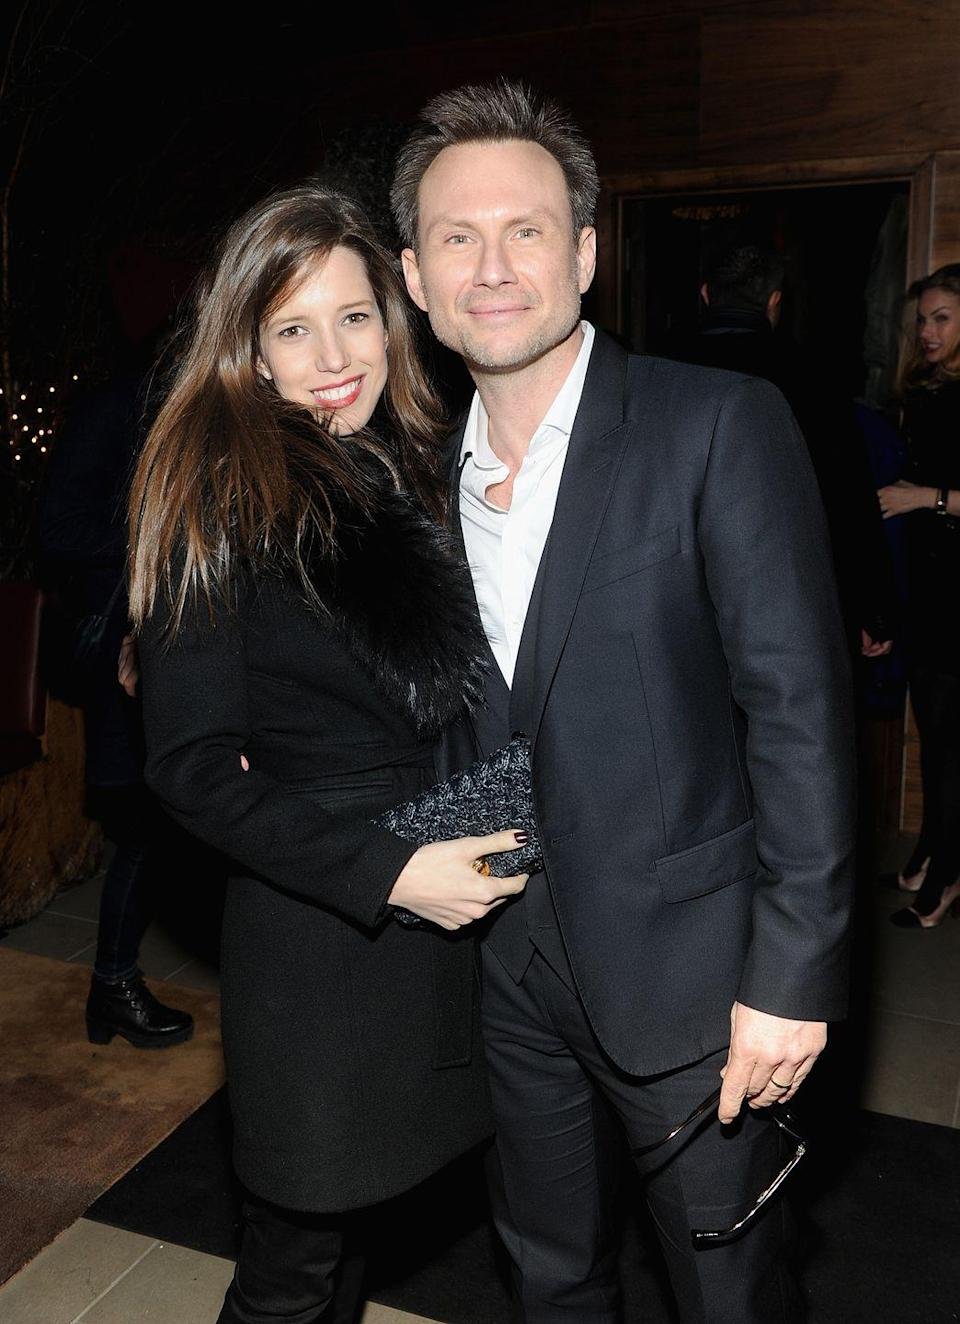 <p><strong>Age gap: </strong>18 years</p><p>After meeting on Florida's Little Palm Island, Christian Slater and his wife, Brittany Lopez, tied the knot in a spontaneous ceremony at the Miami Courthouse. (That was in 2013, after a few years of dating.) The couple was just getting their marriage certificate, and reportedly decided they couldn't wait any longer to make it official.</p>